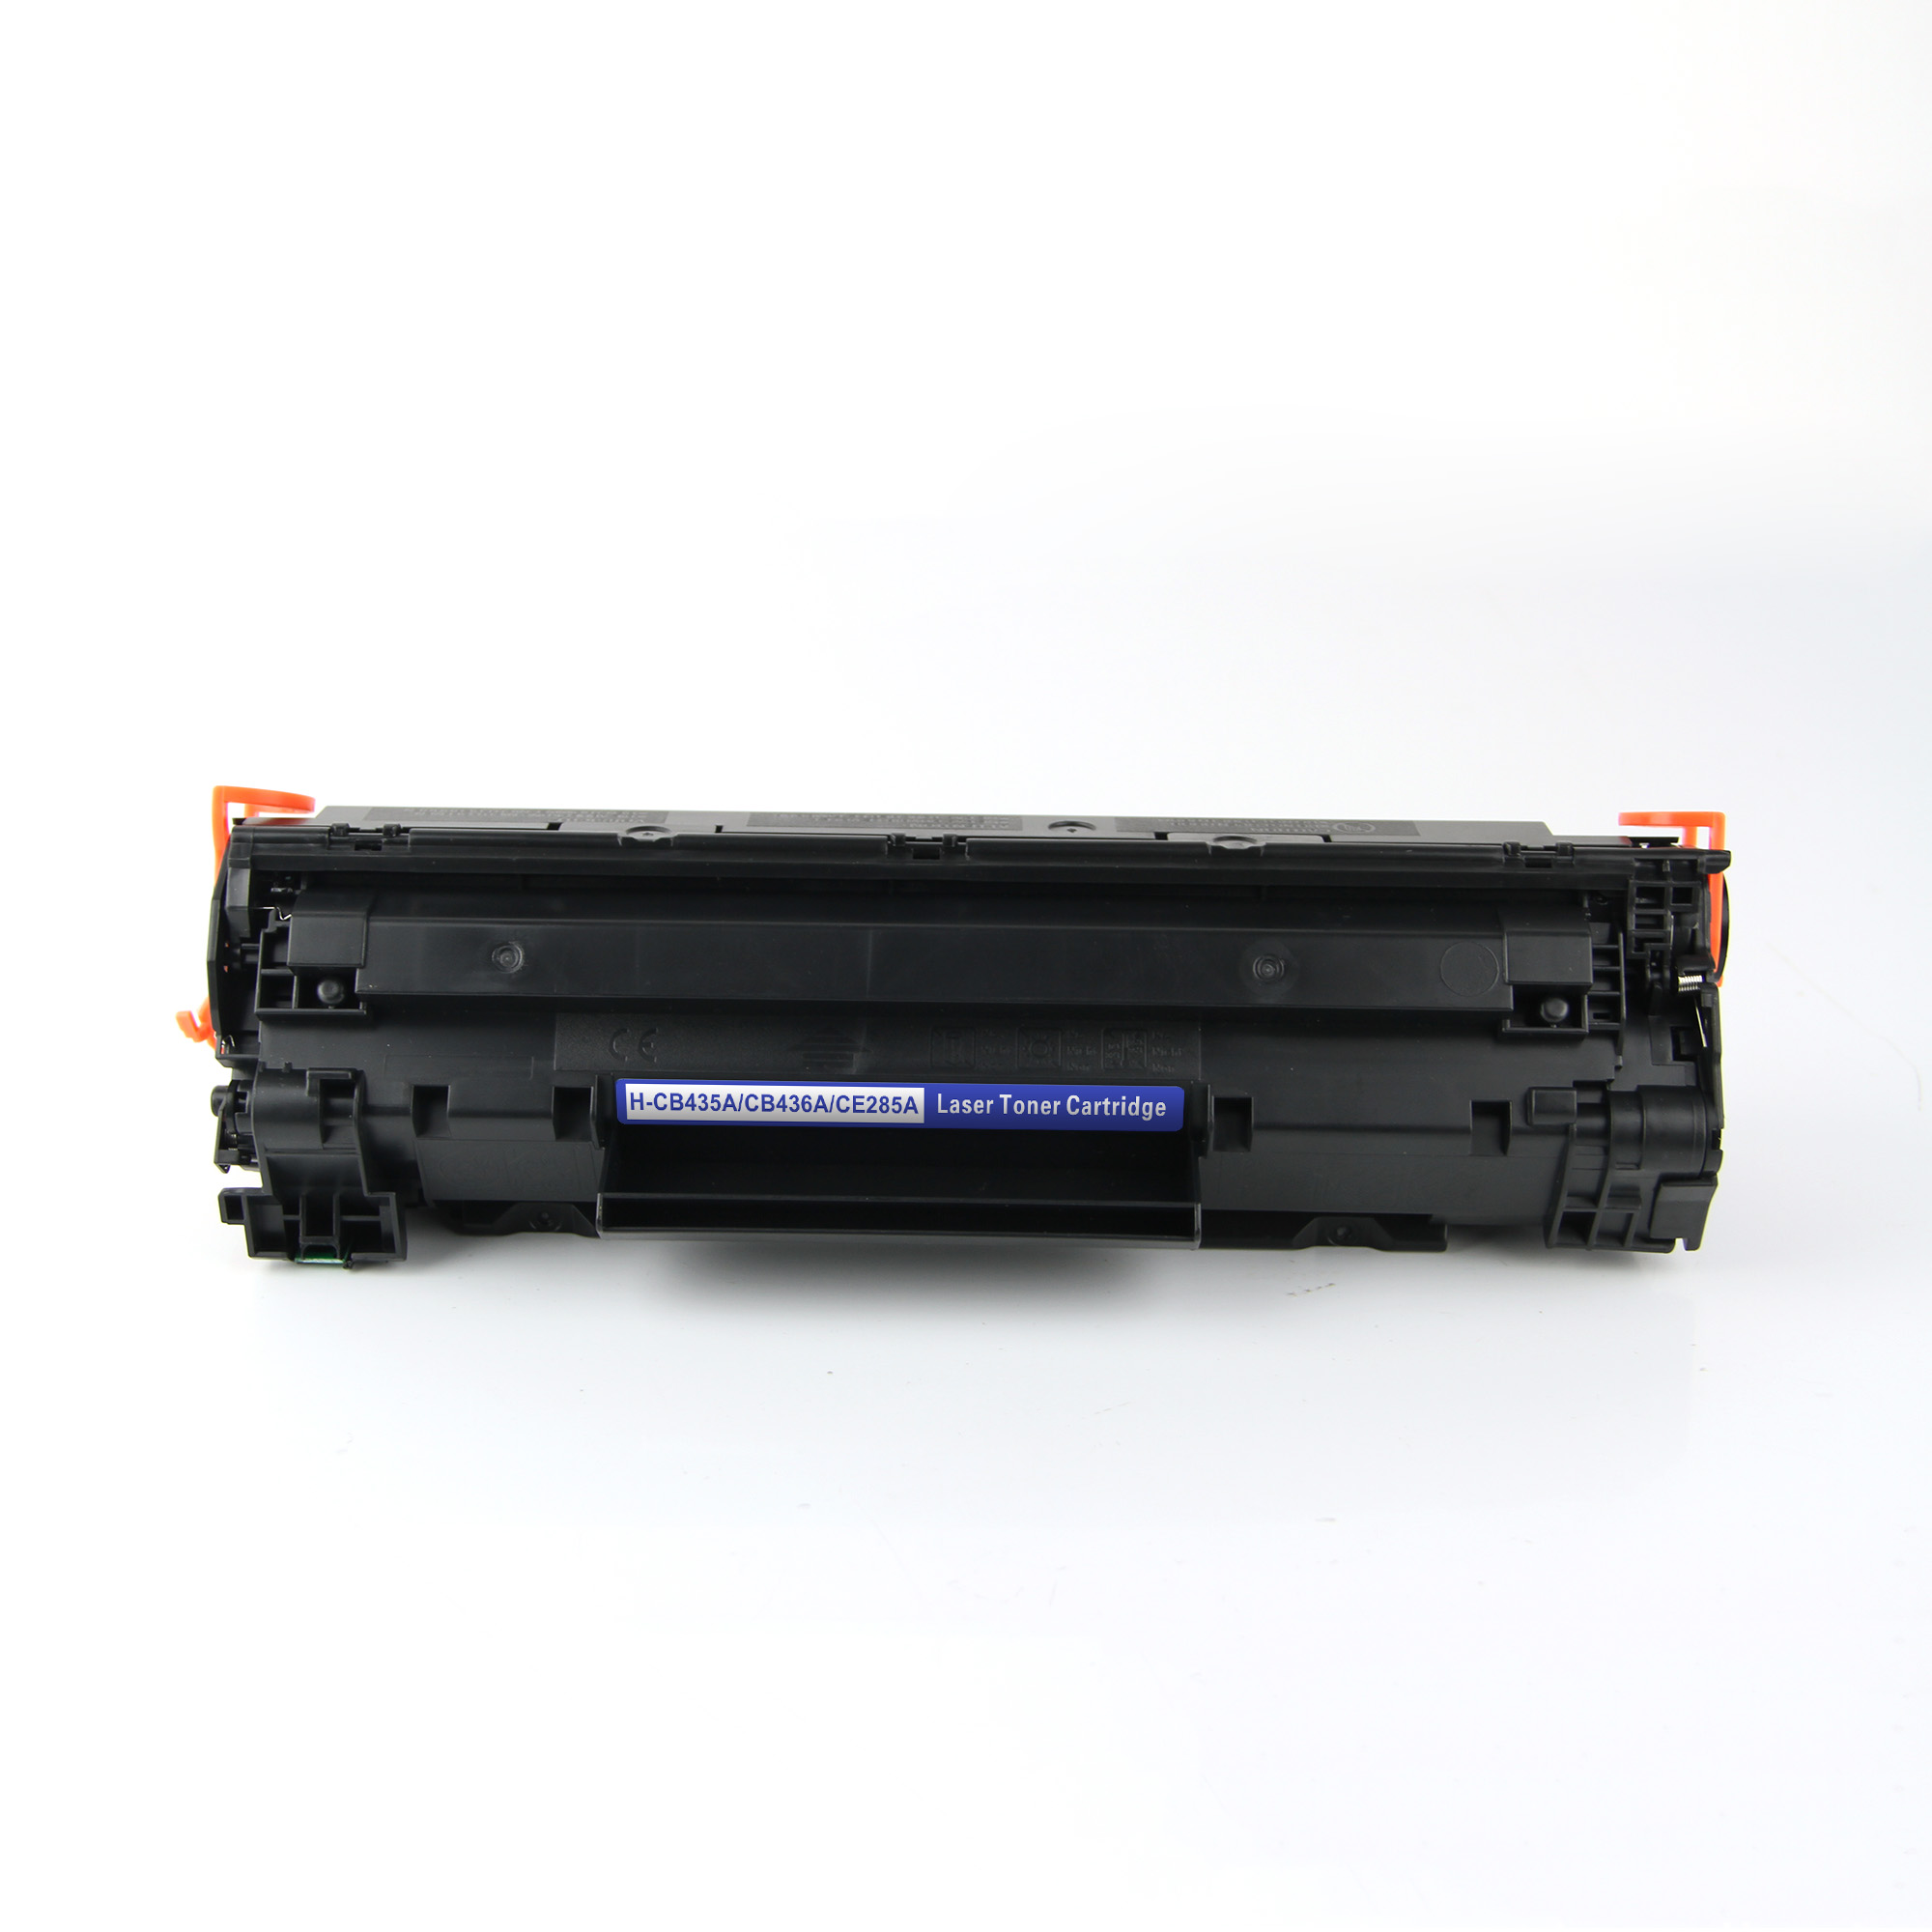 Skyhorse Compatible Toner Cartridge for HP CB435A, Work for HP LaserJet <strong>P1005</strong> P1006 Canon LBP3018 3010 3100 3150